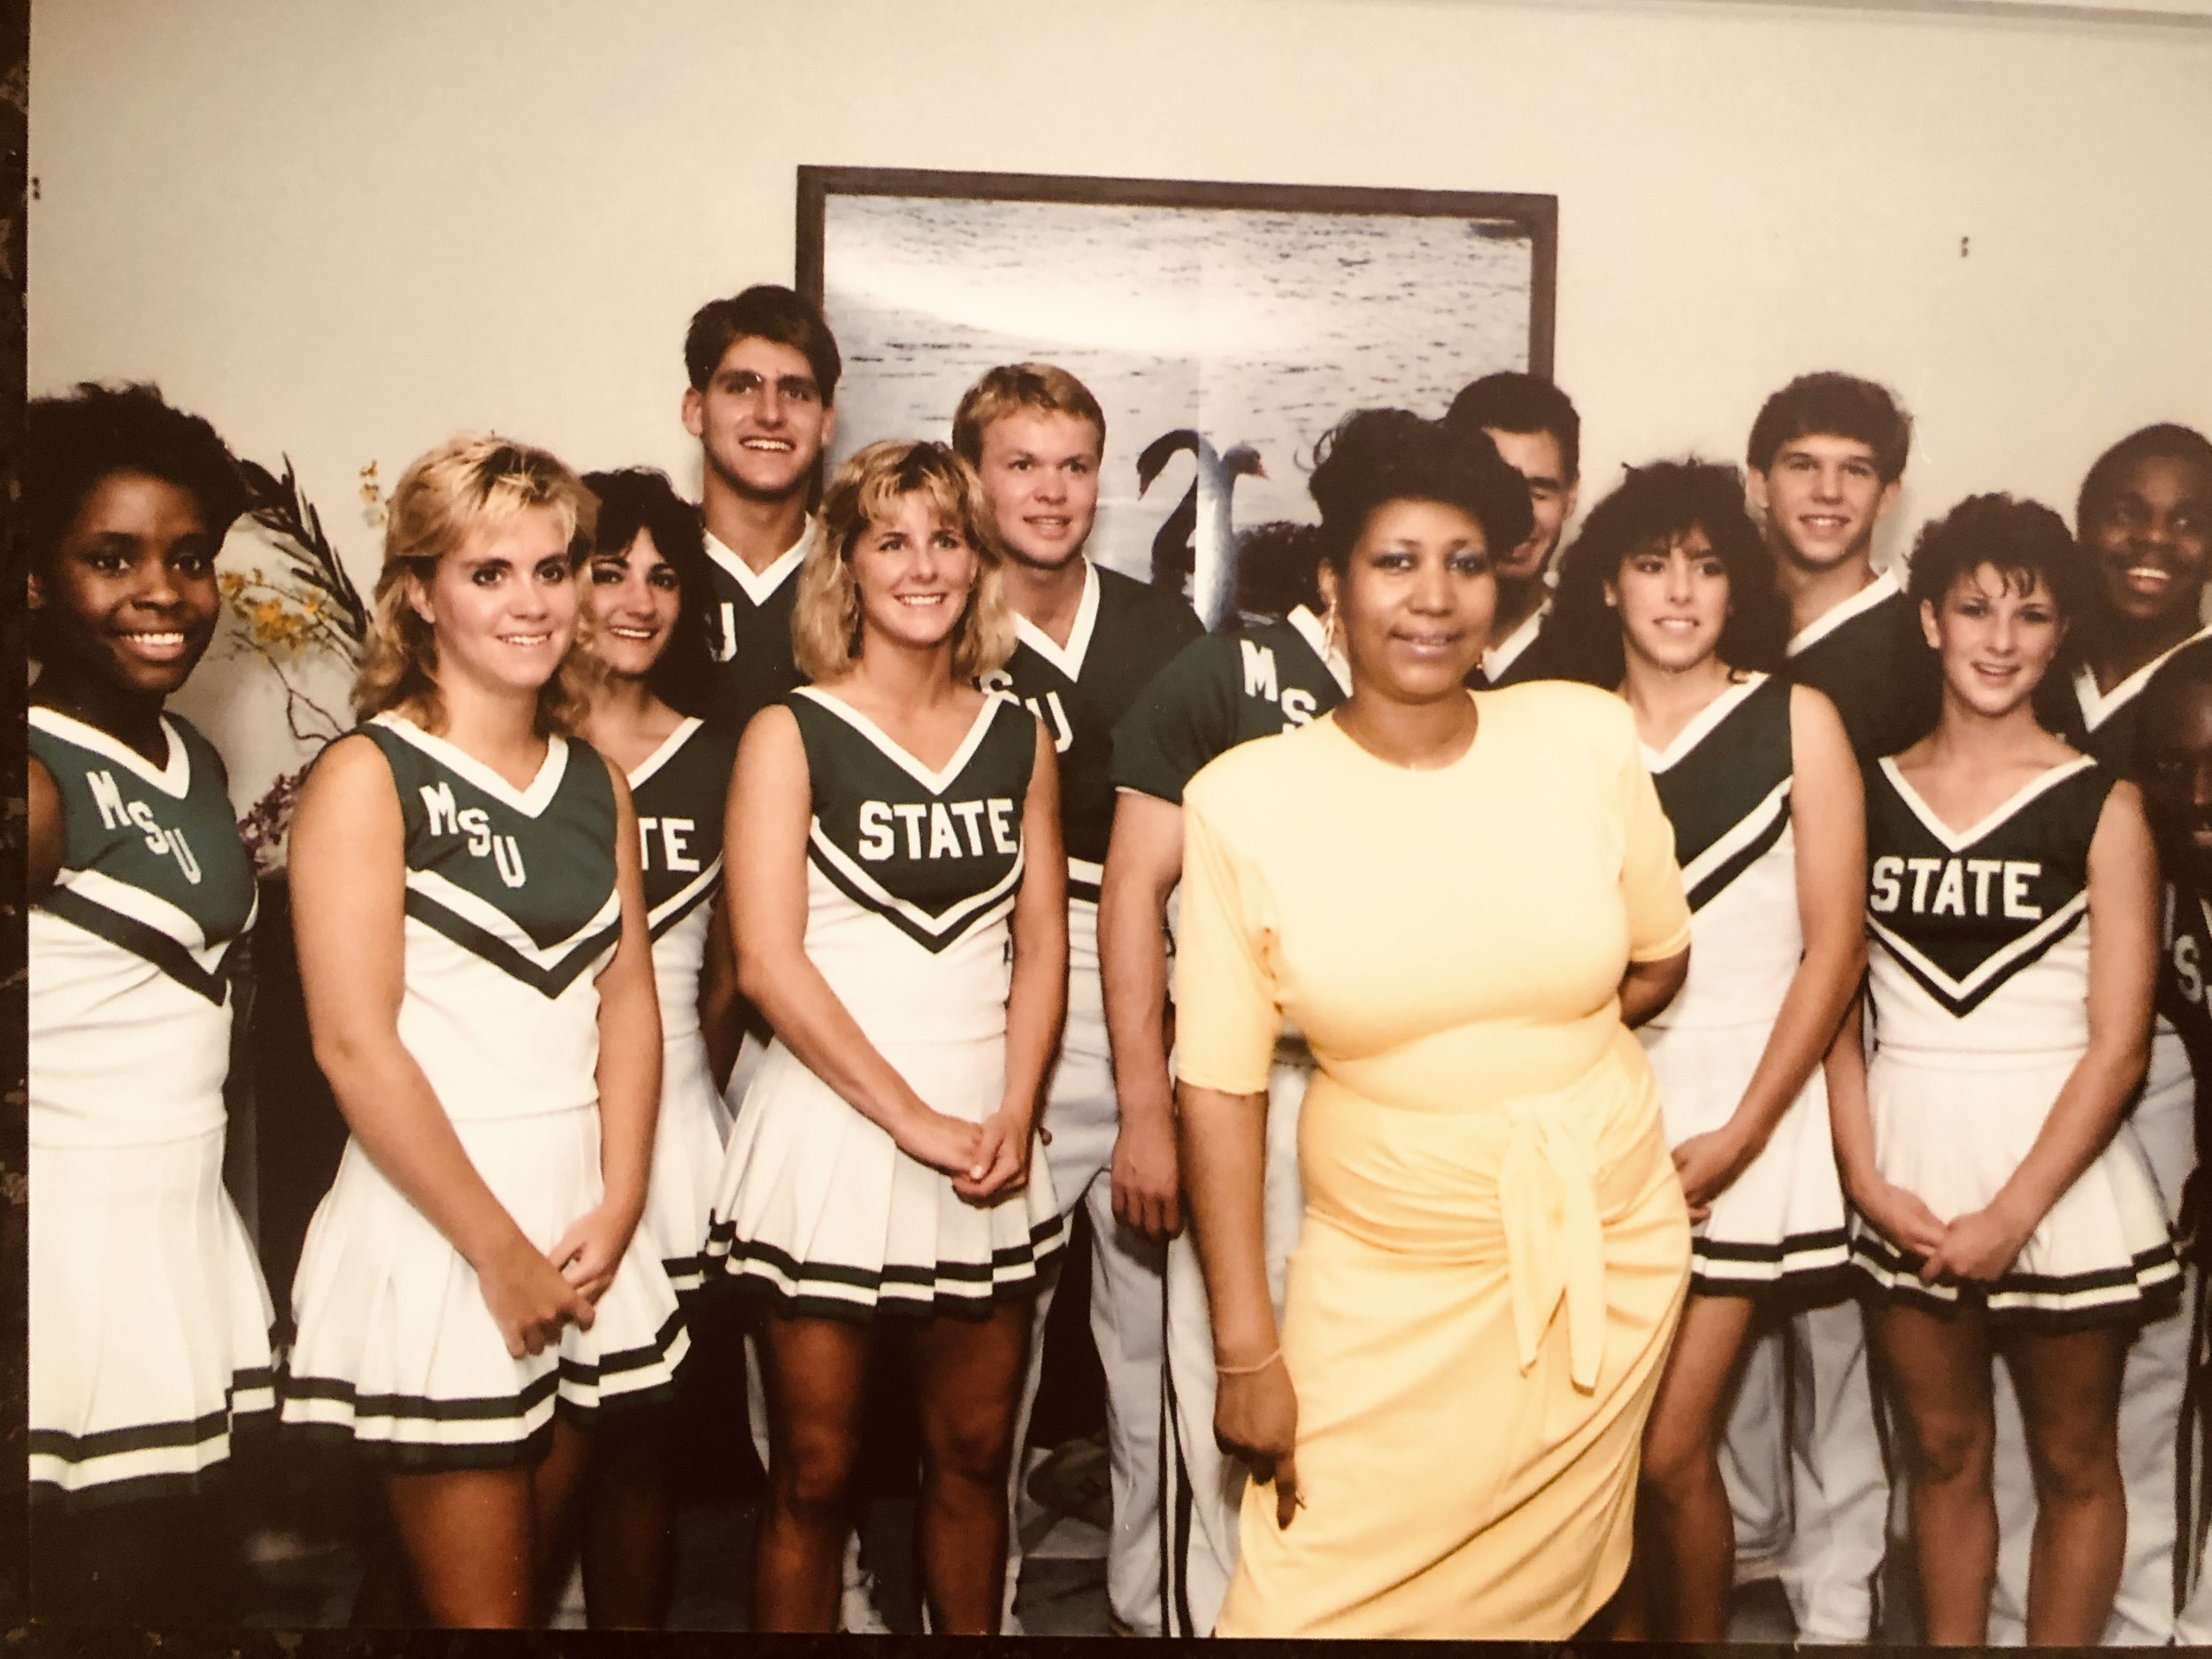 Aretha surprised her son Teddy at his college graduation party by inviting the entire Michigan State University cheerleading squad to their home!